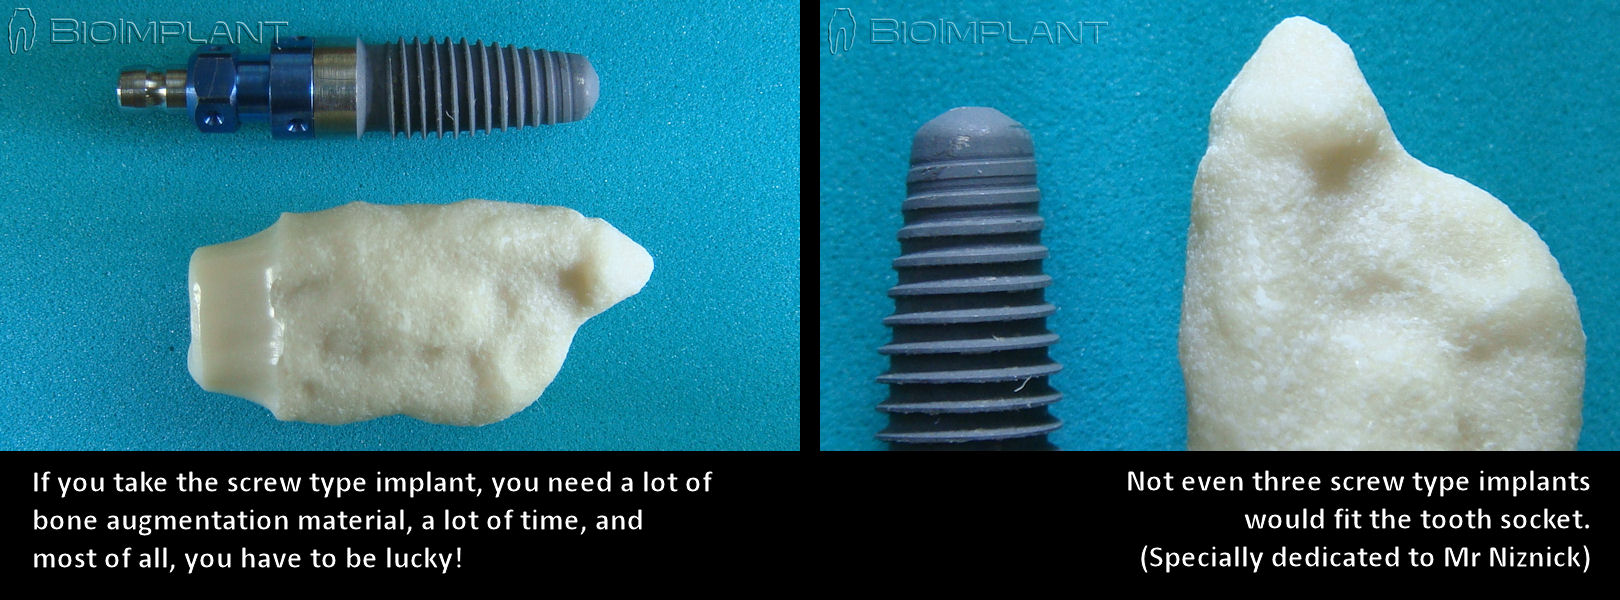 anatomic_dental_implant_unique_form